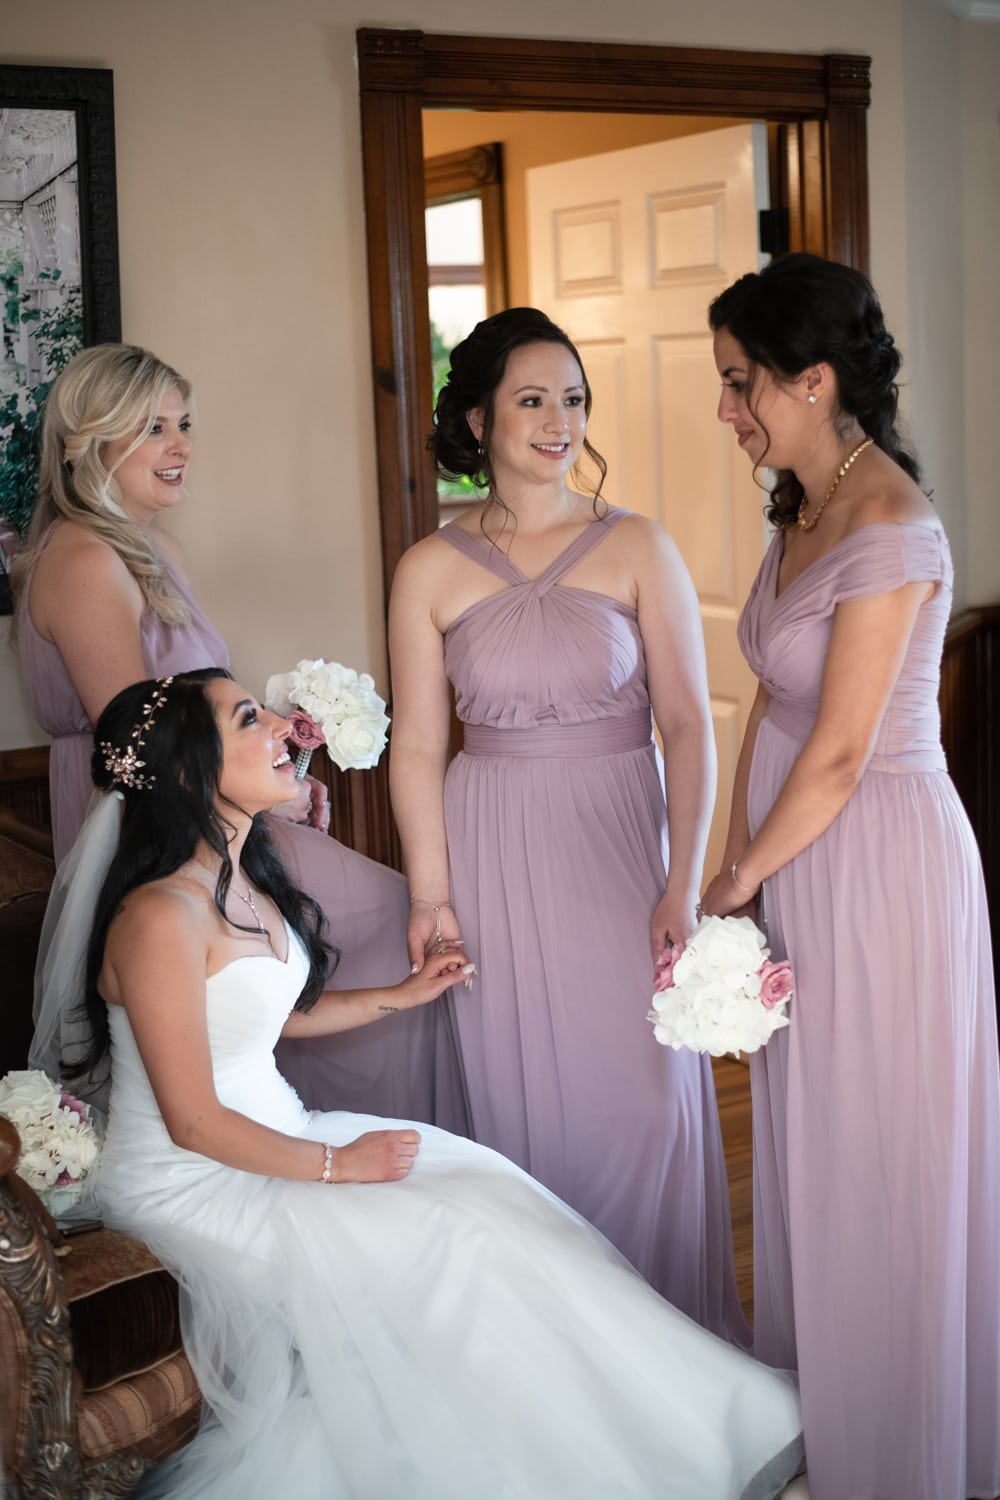 Bride and bridesmaids in bridal suite at Grand Tradition Estate.